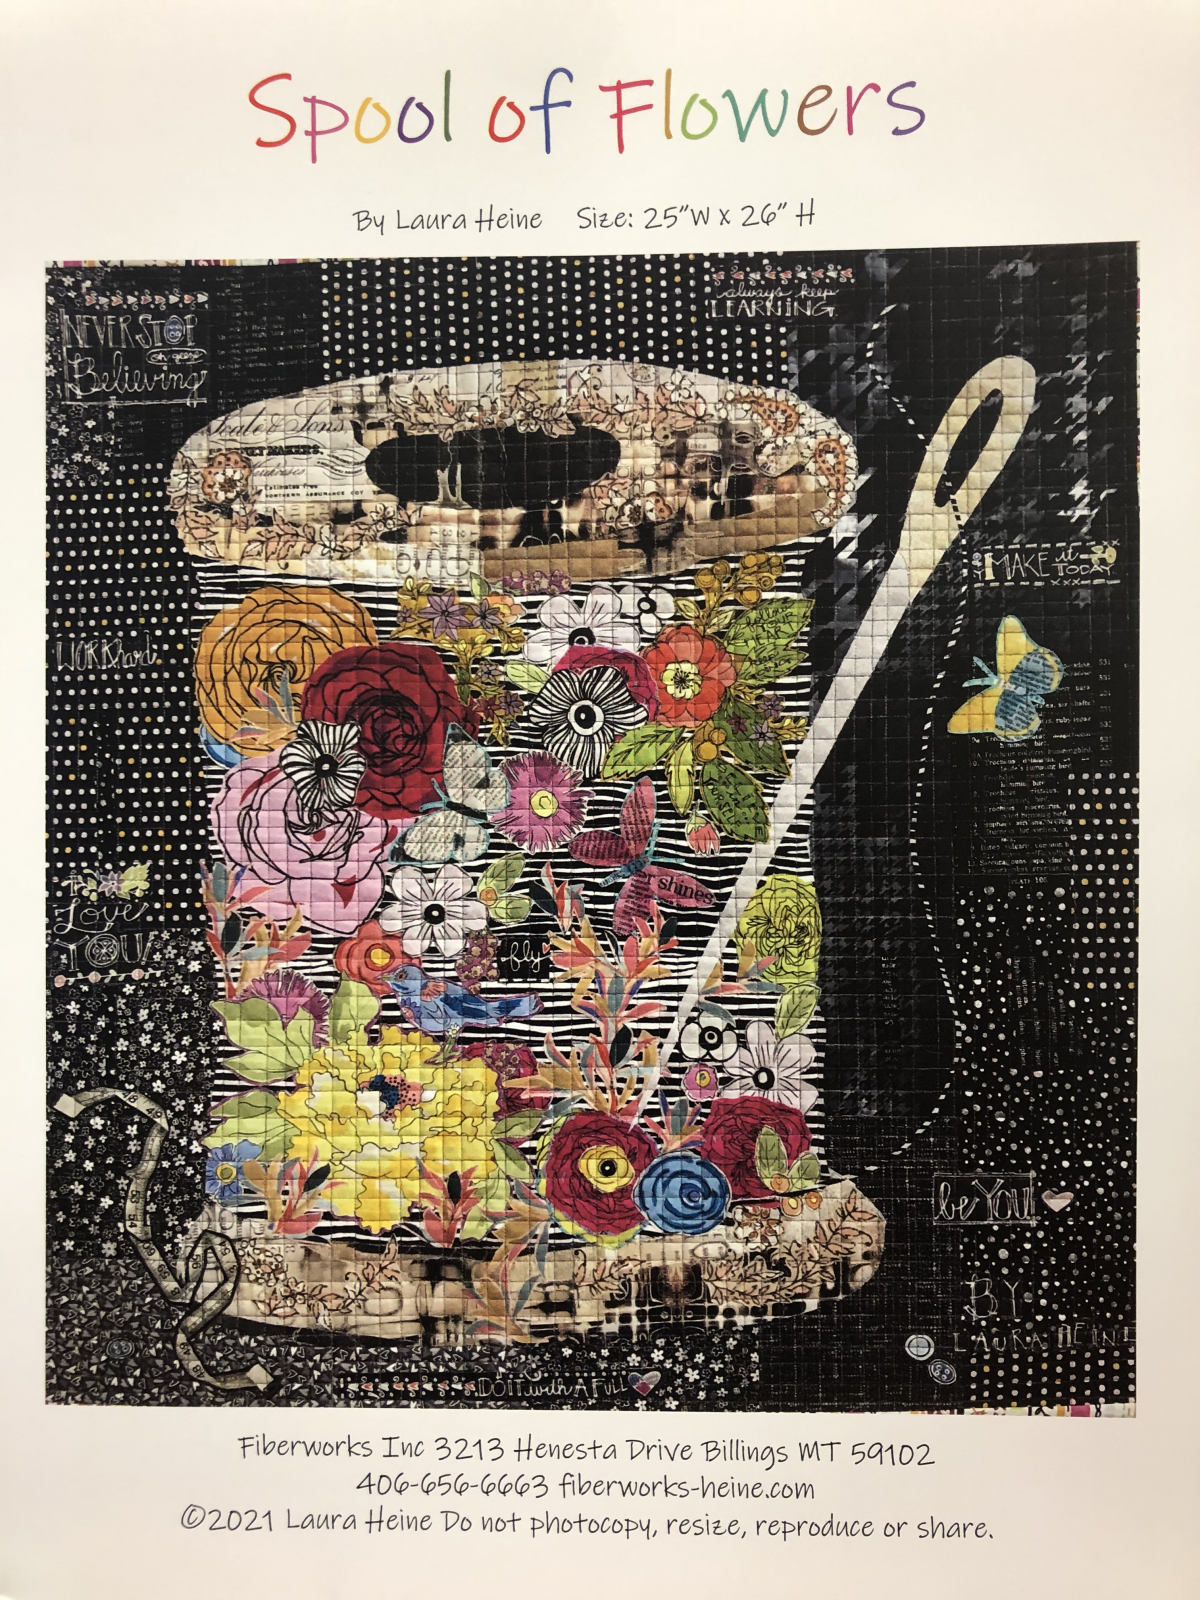 Spool of Flowers Collage Pattern by Laura Heine